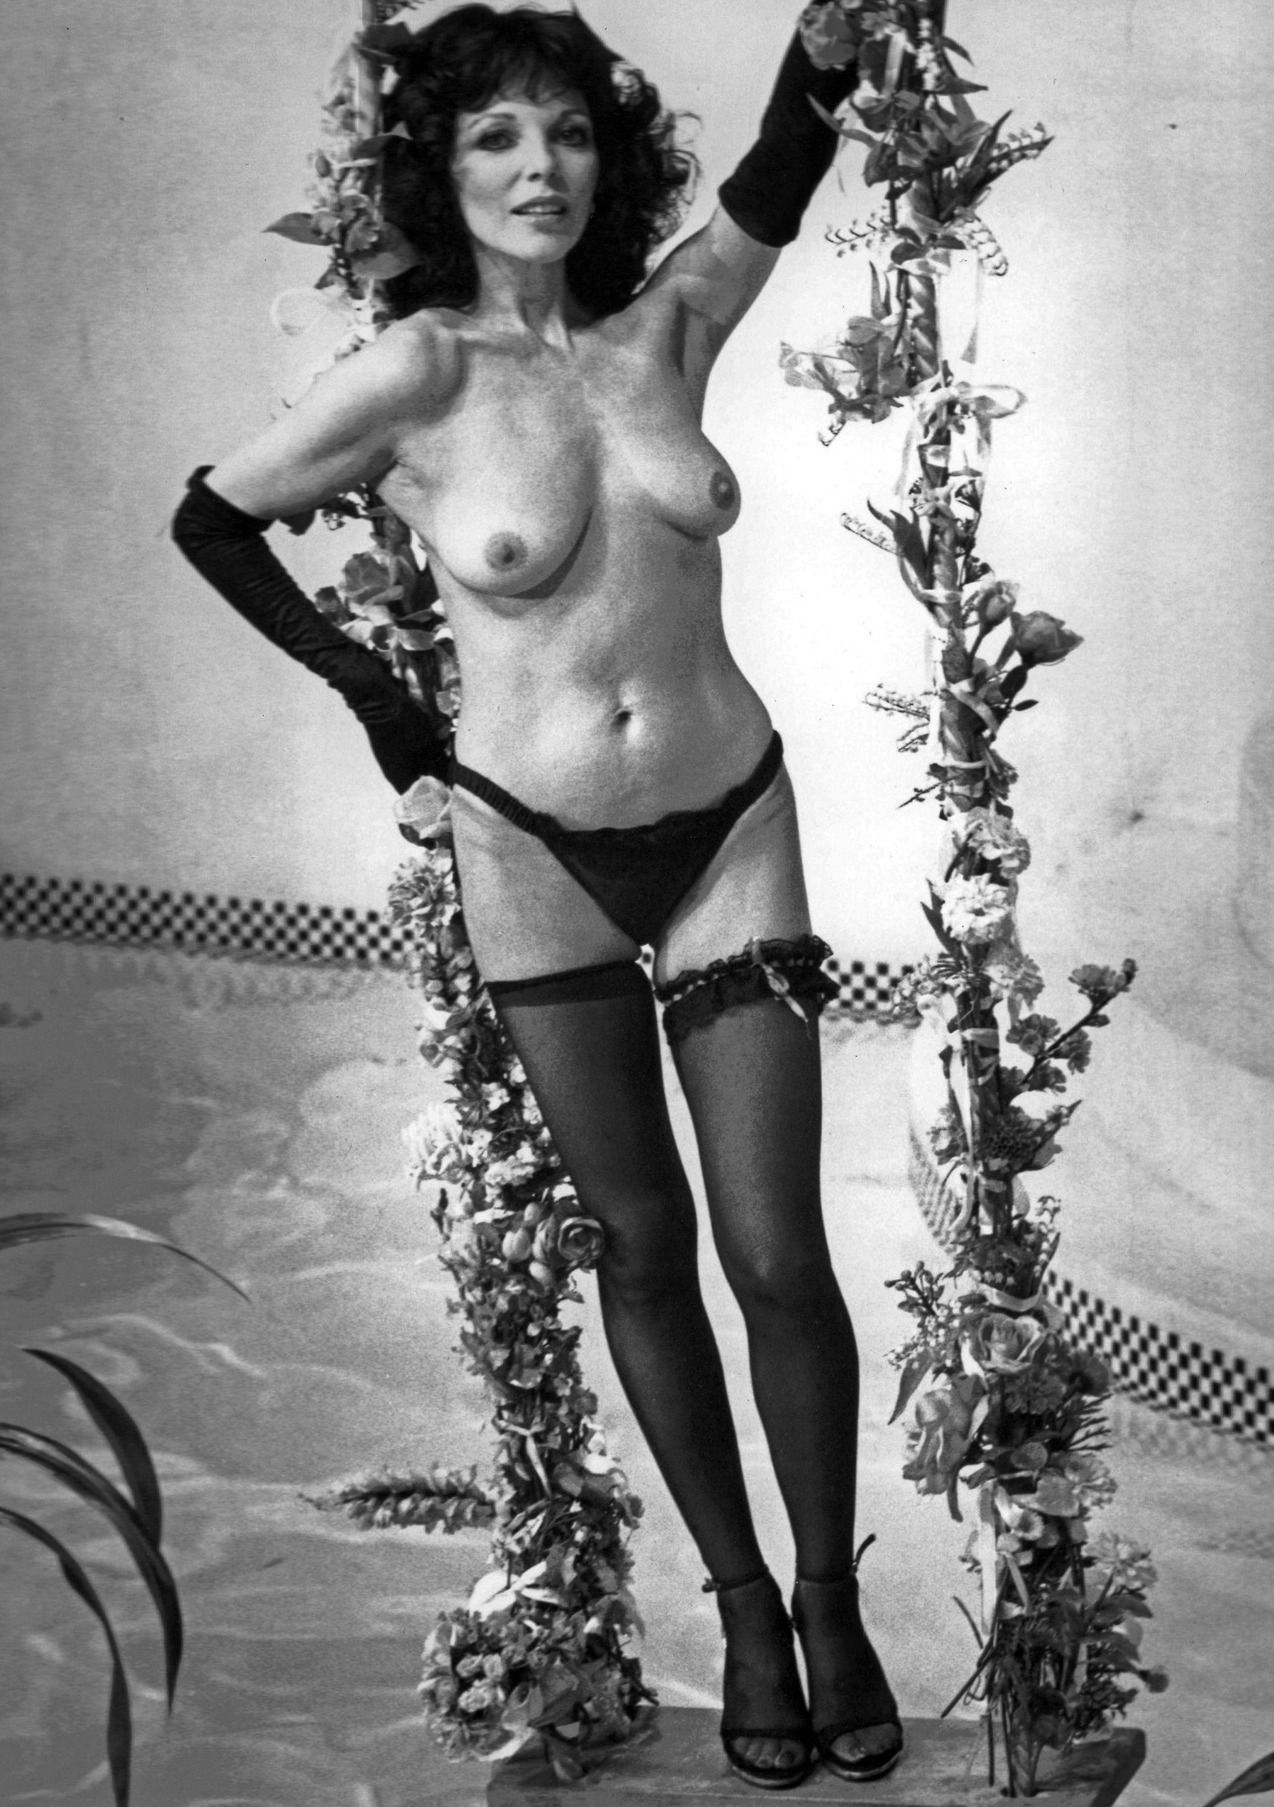 Joan Sims Nude nude pictures of joan collins - stocking tease - www